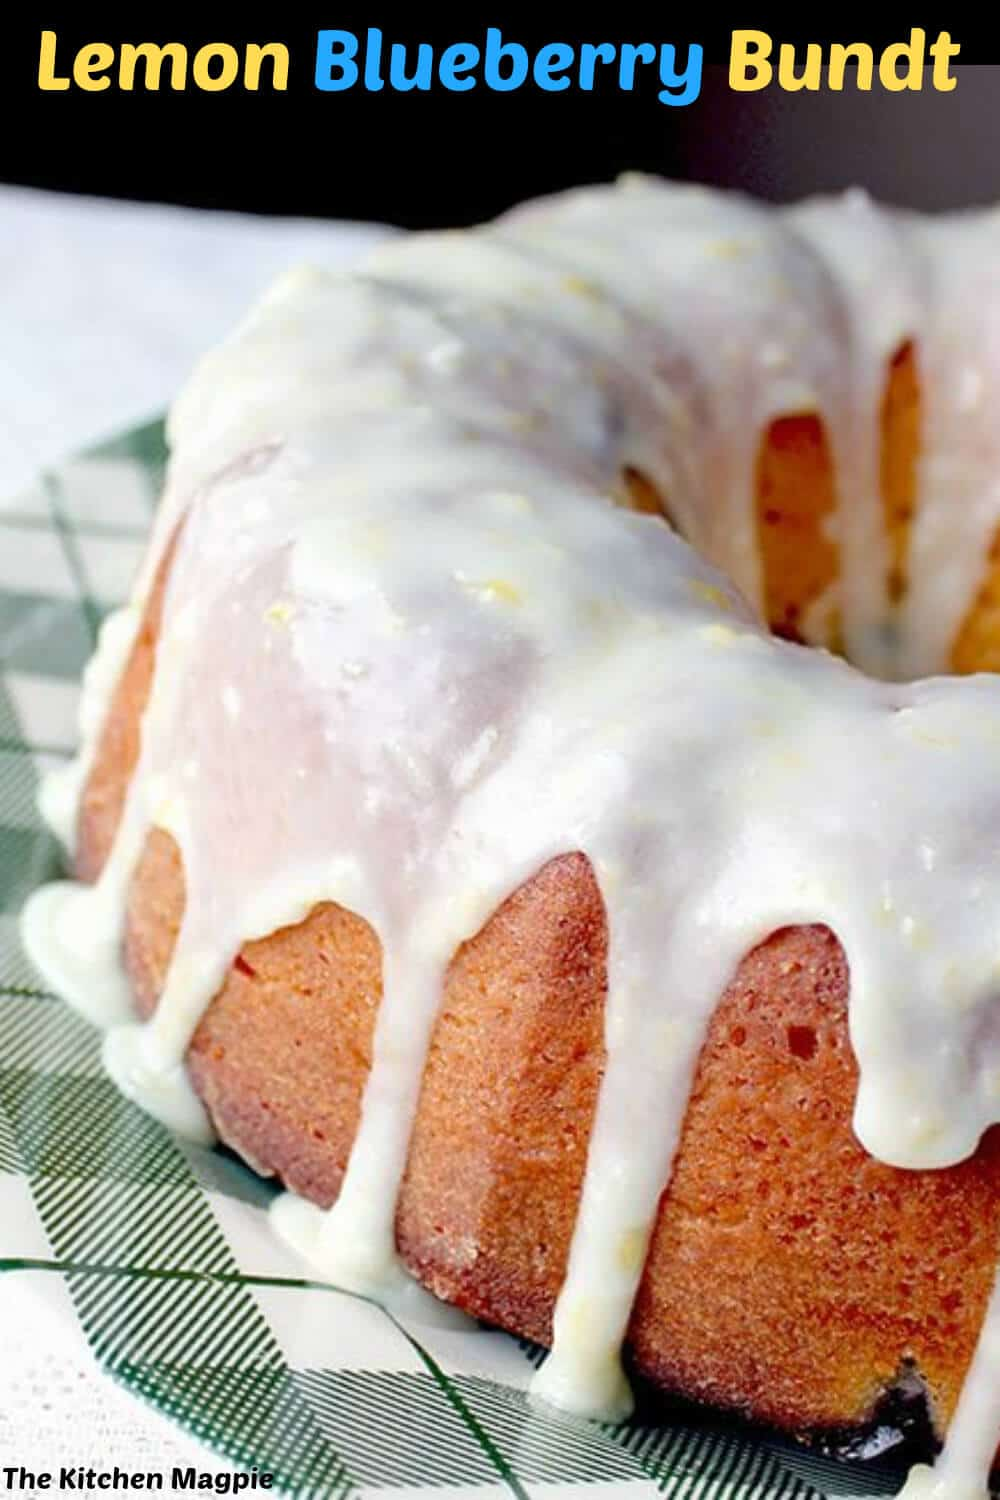 Greek yogurt is the secret to this amazingly moist cake. Tangy, sweet and the lemon glaze is to die for. #lemon #bundt #blueberry